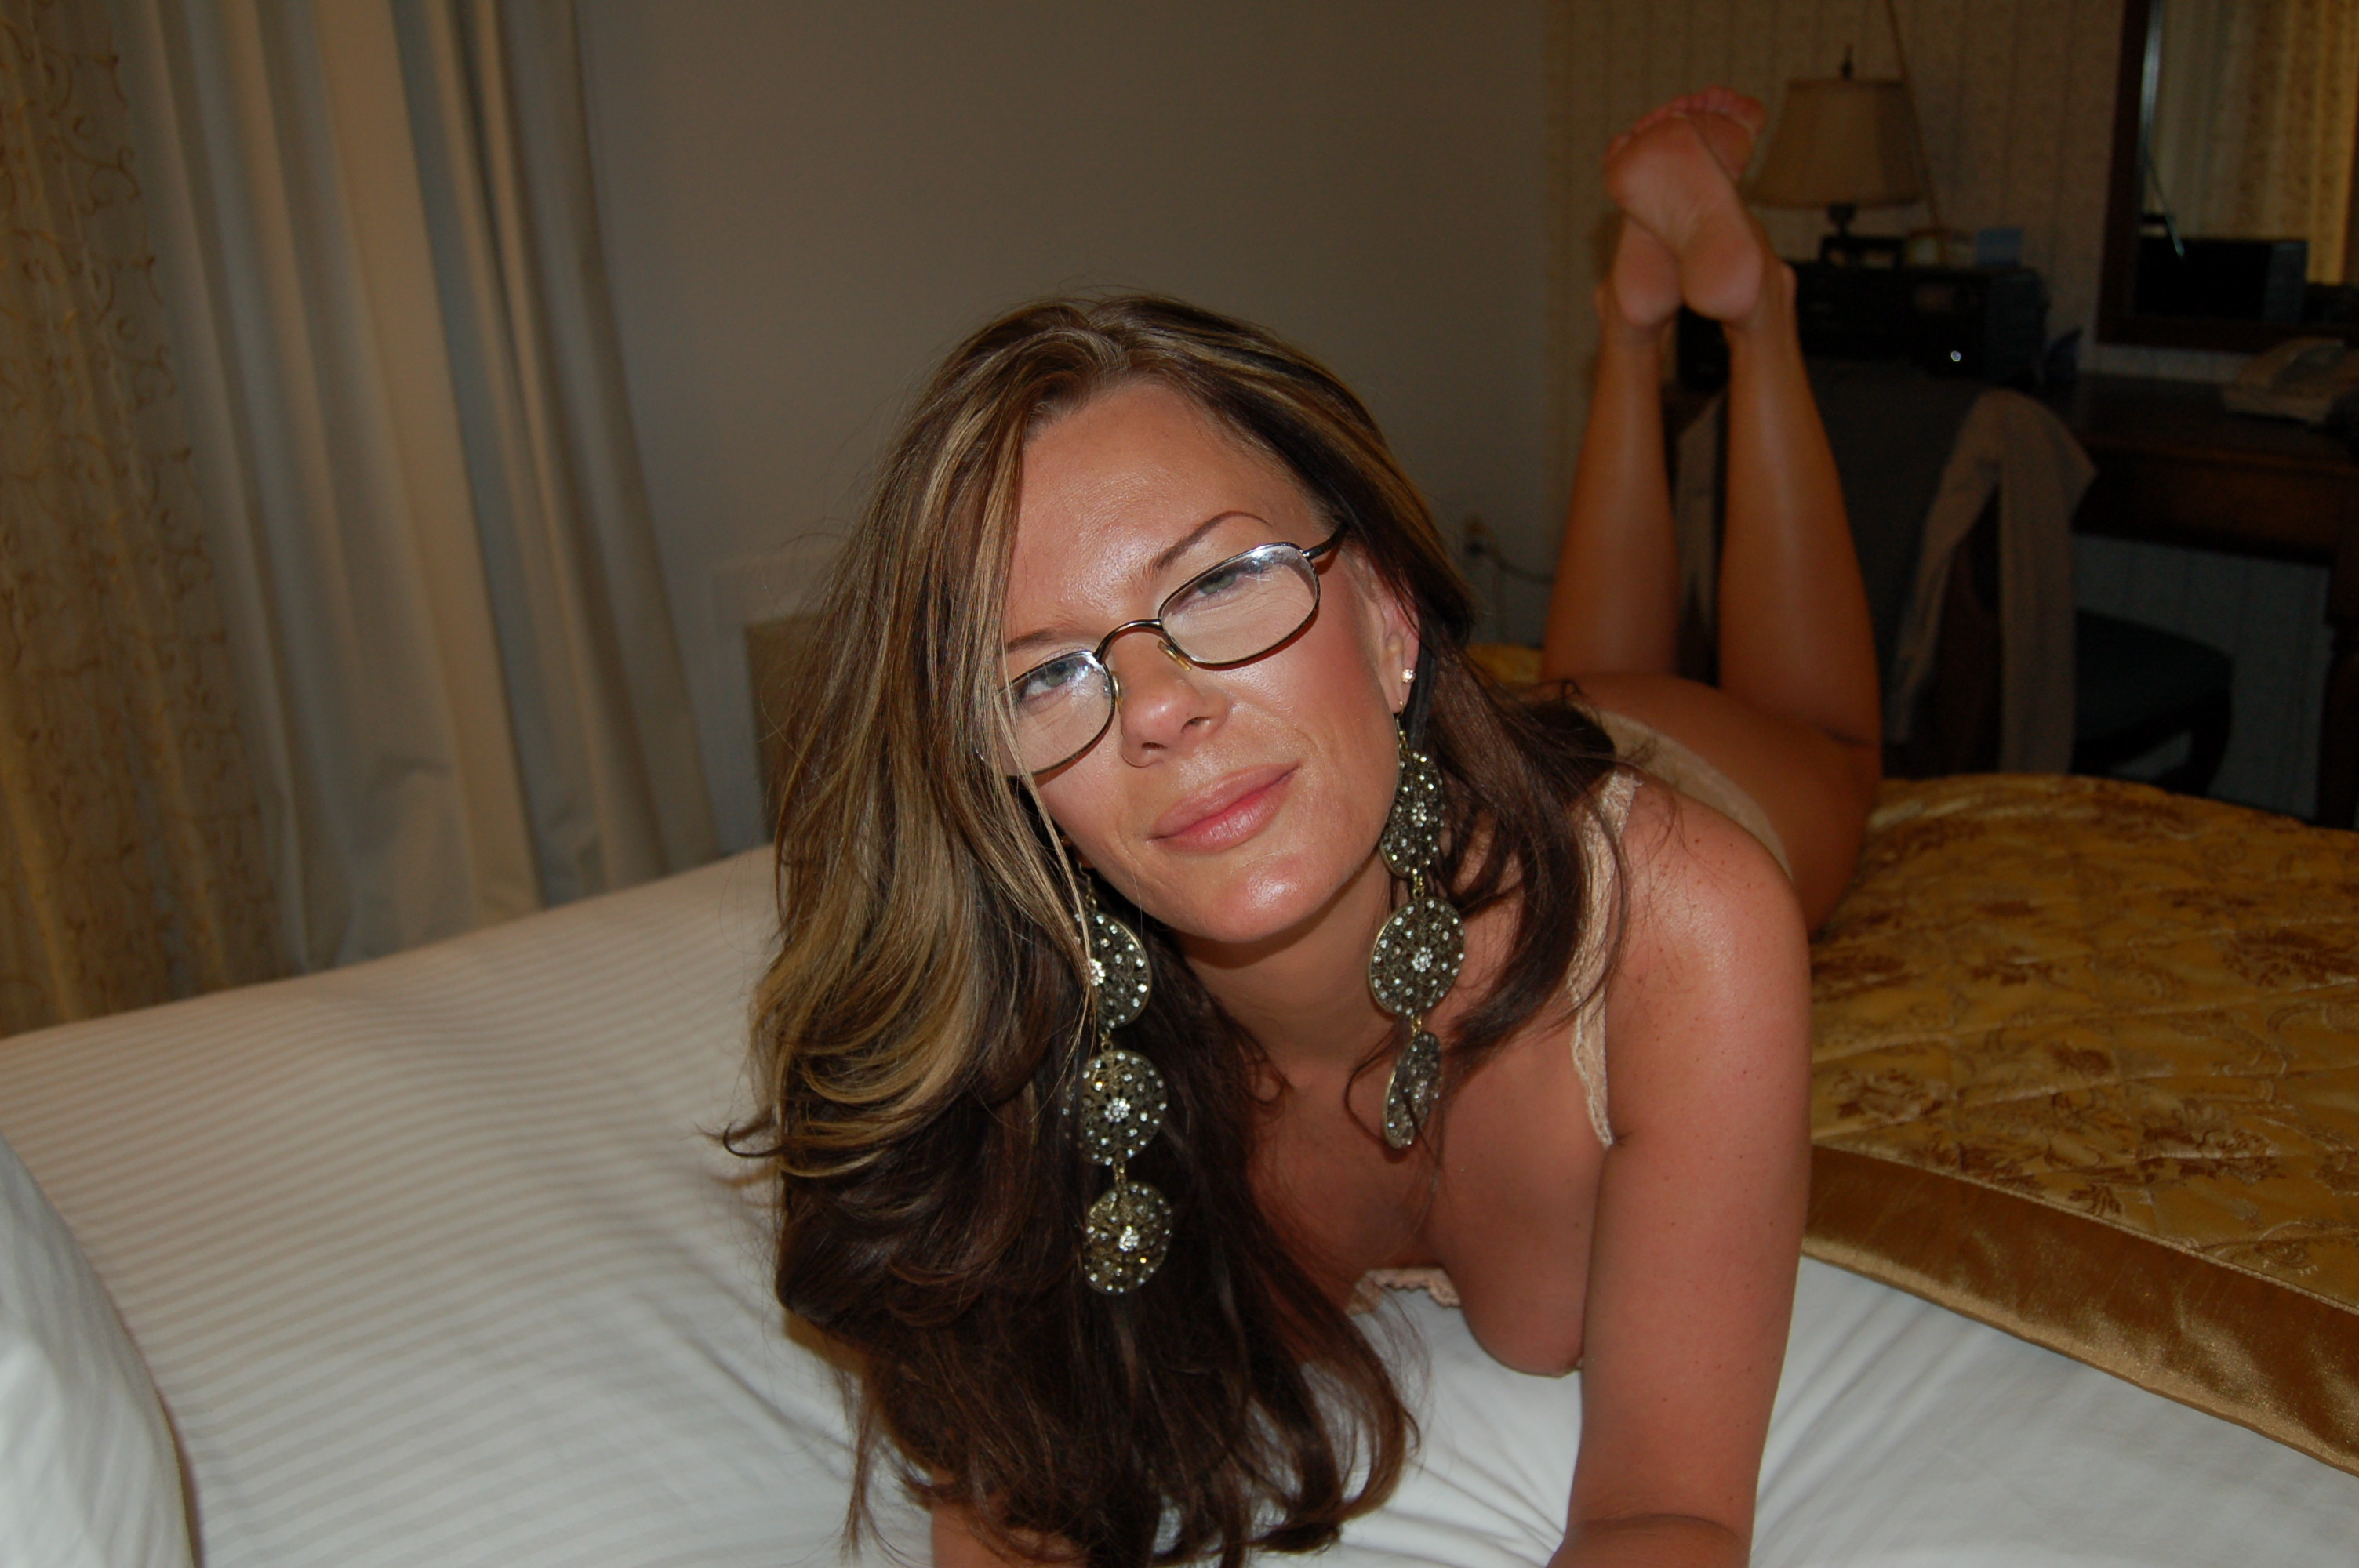 milf-with-glasses